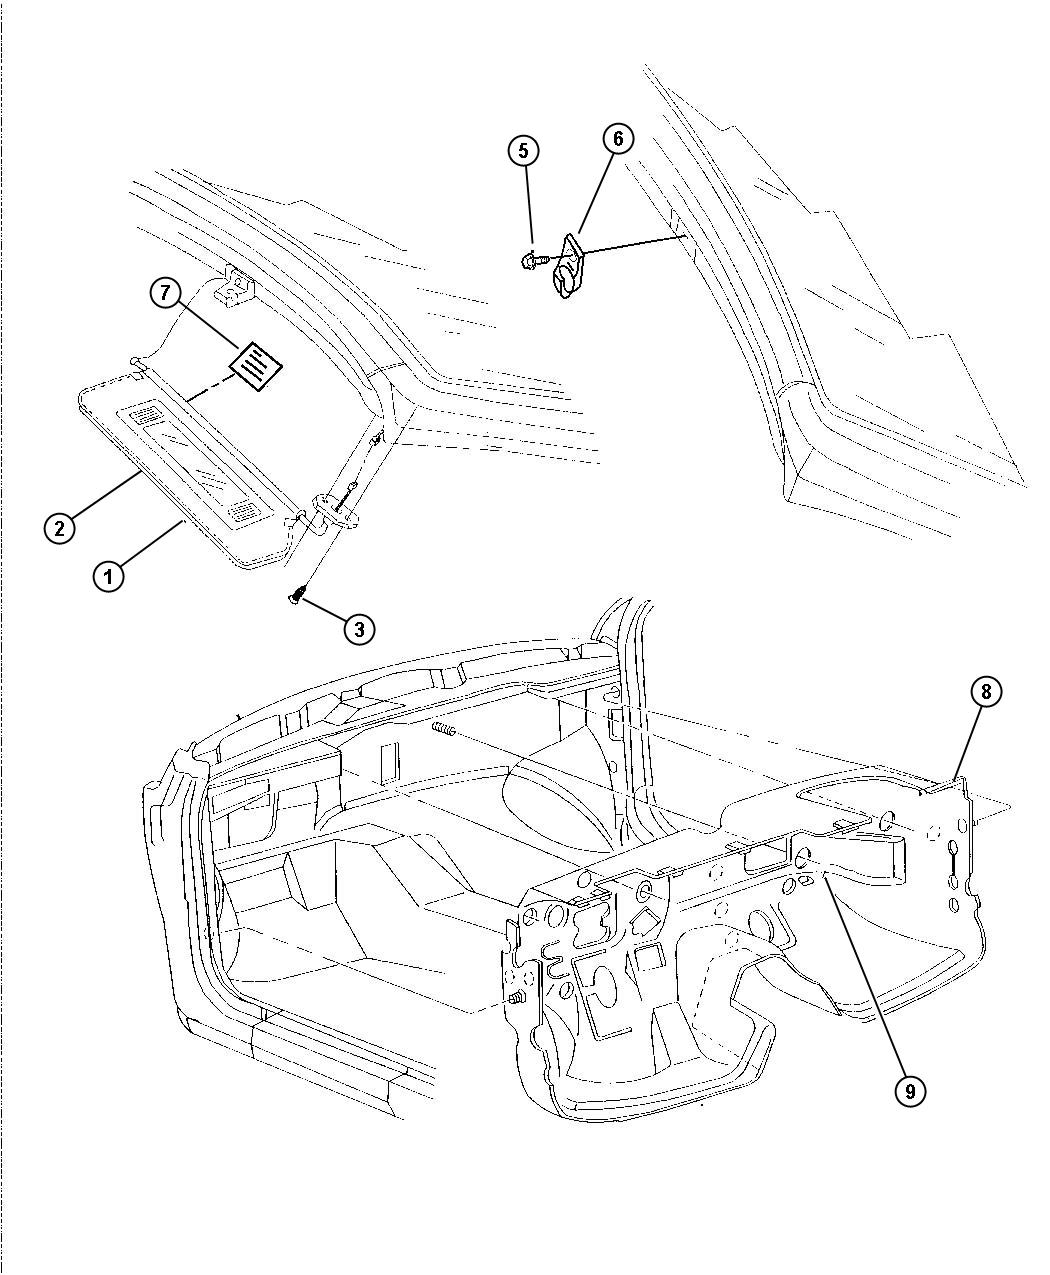 Service manual [Headliner Removal For A 1997 Chrysler